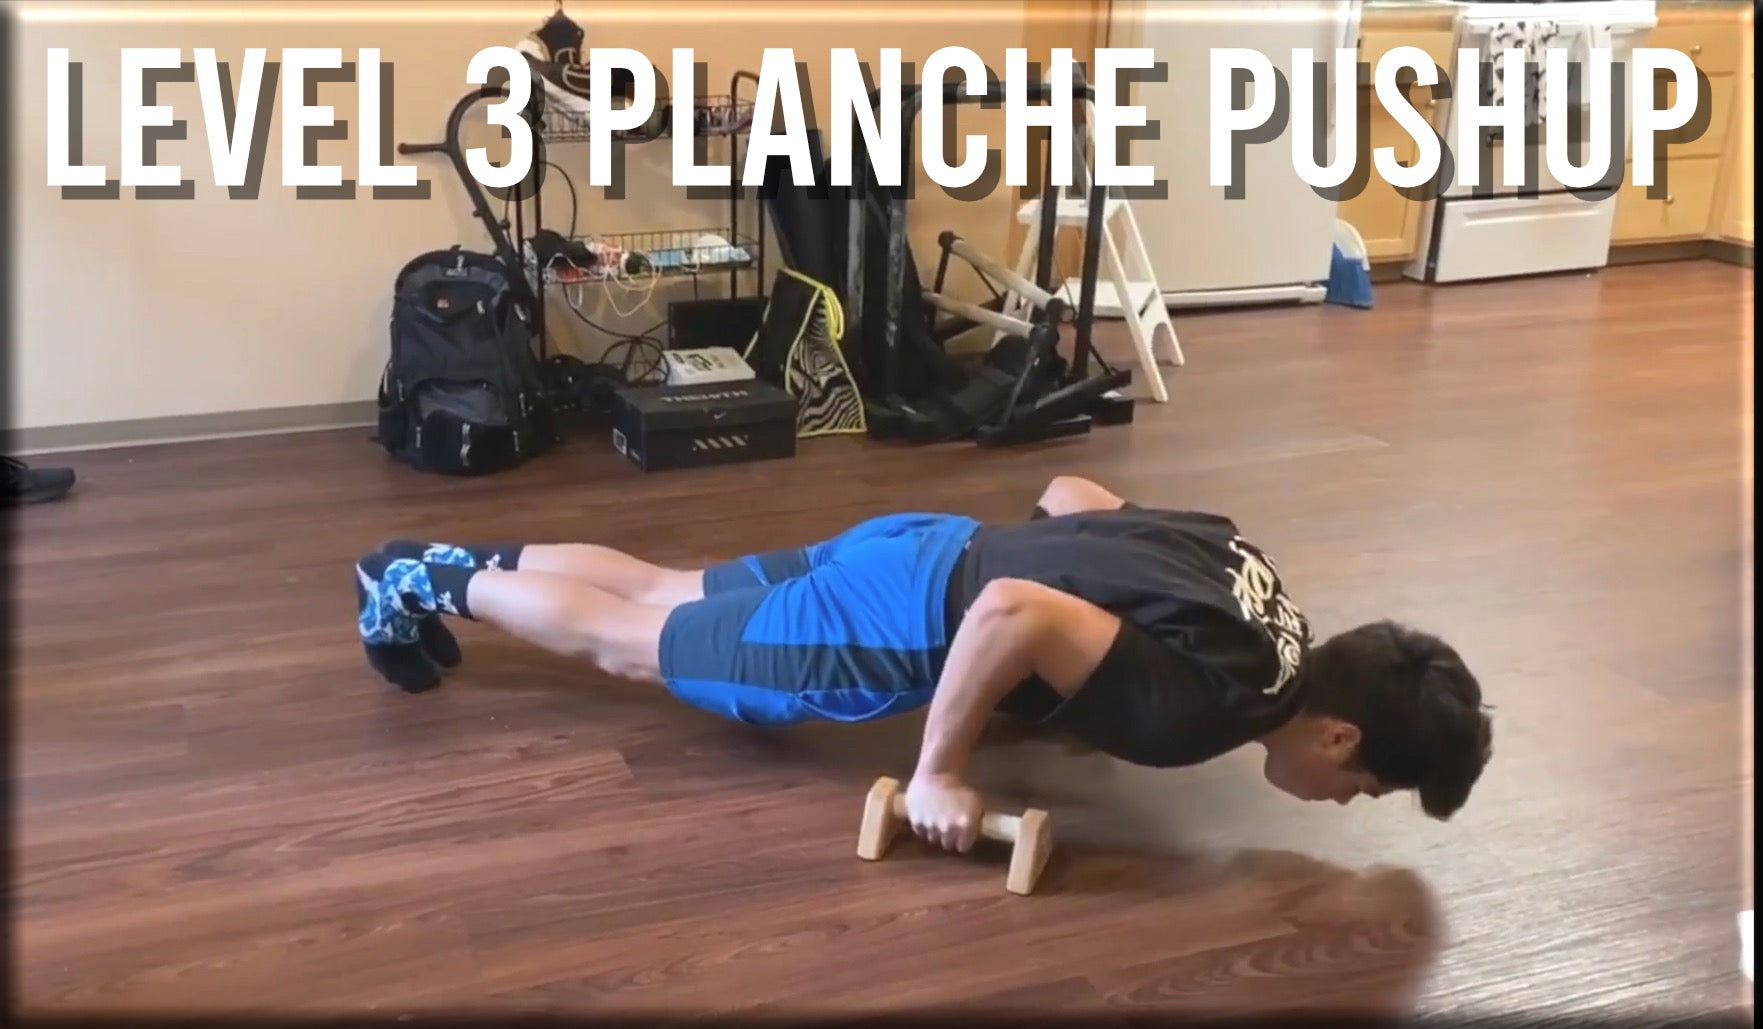 Level 3 Planche Pushup